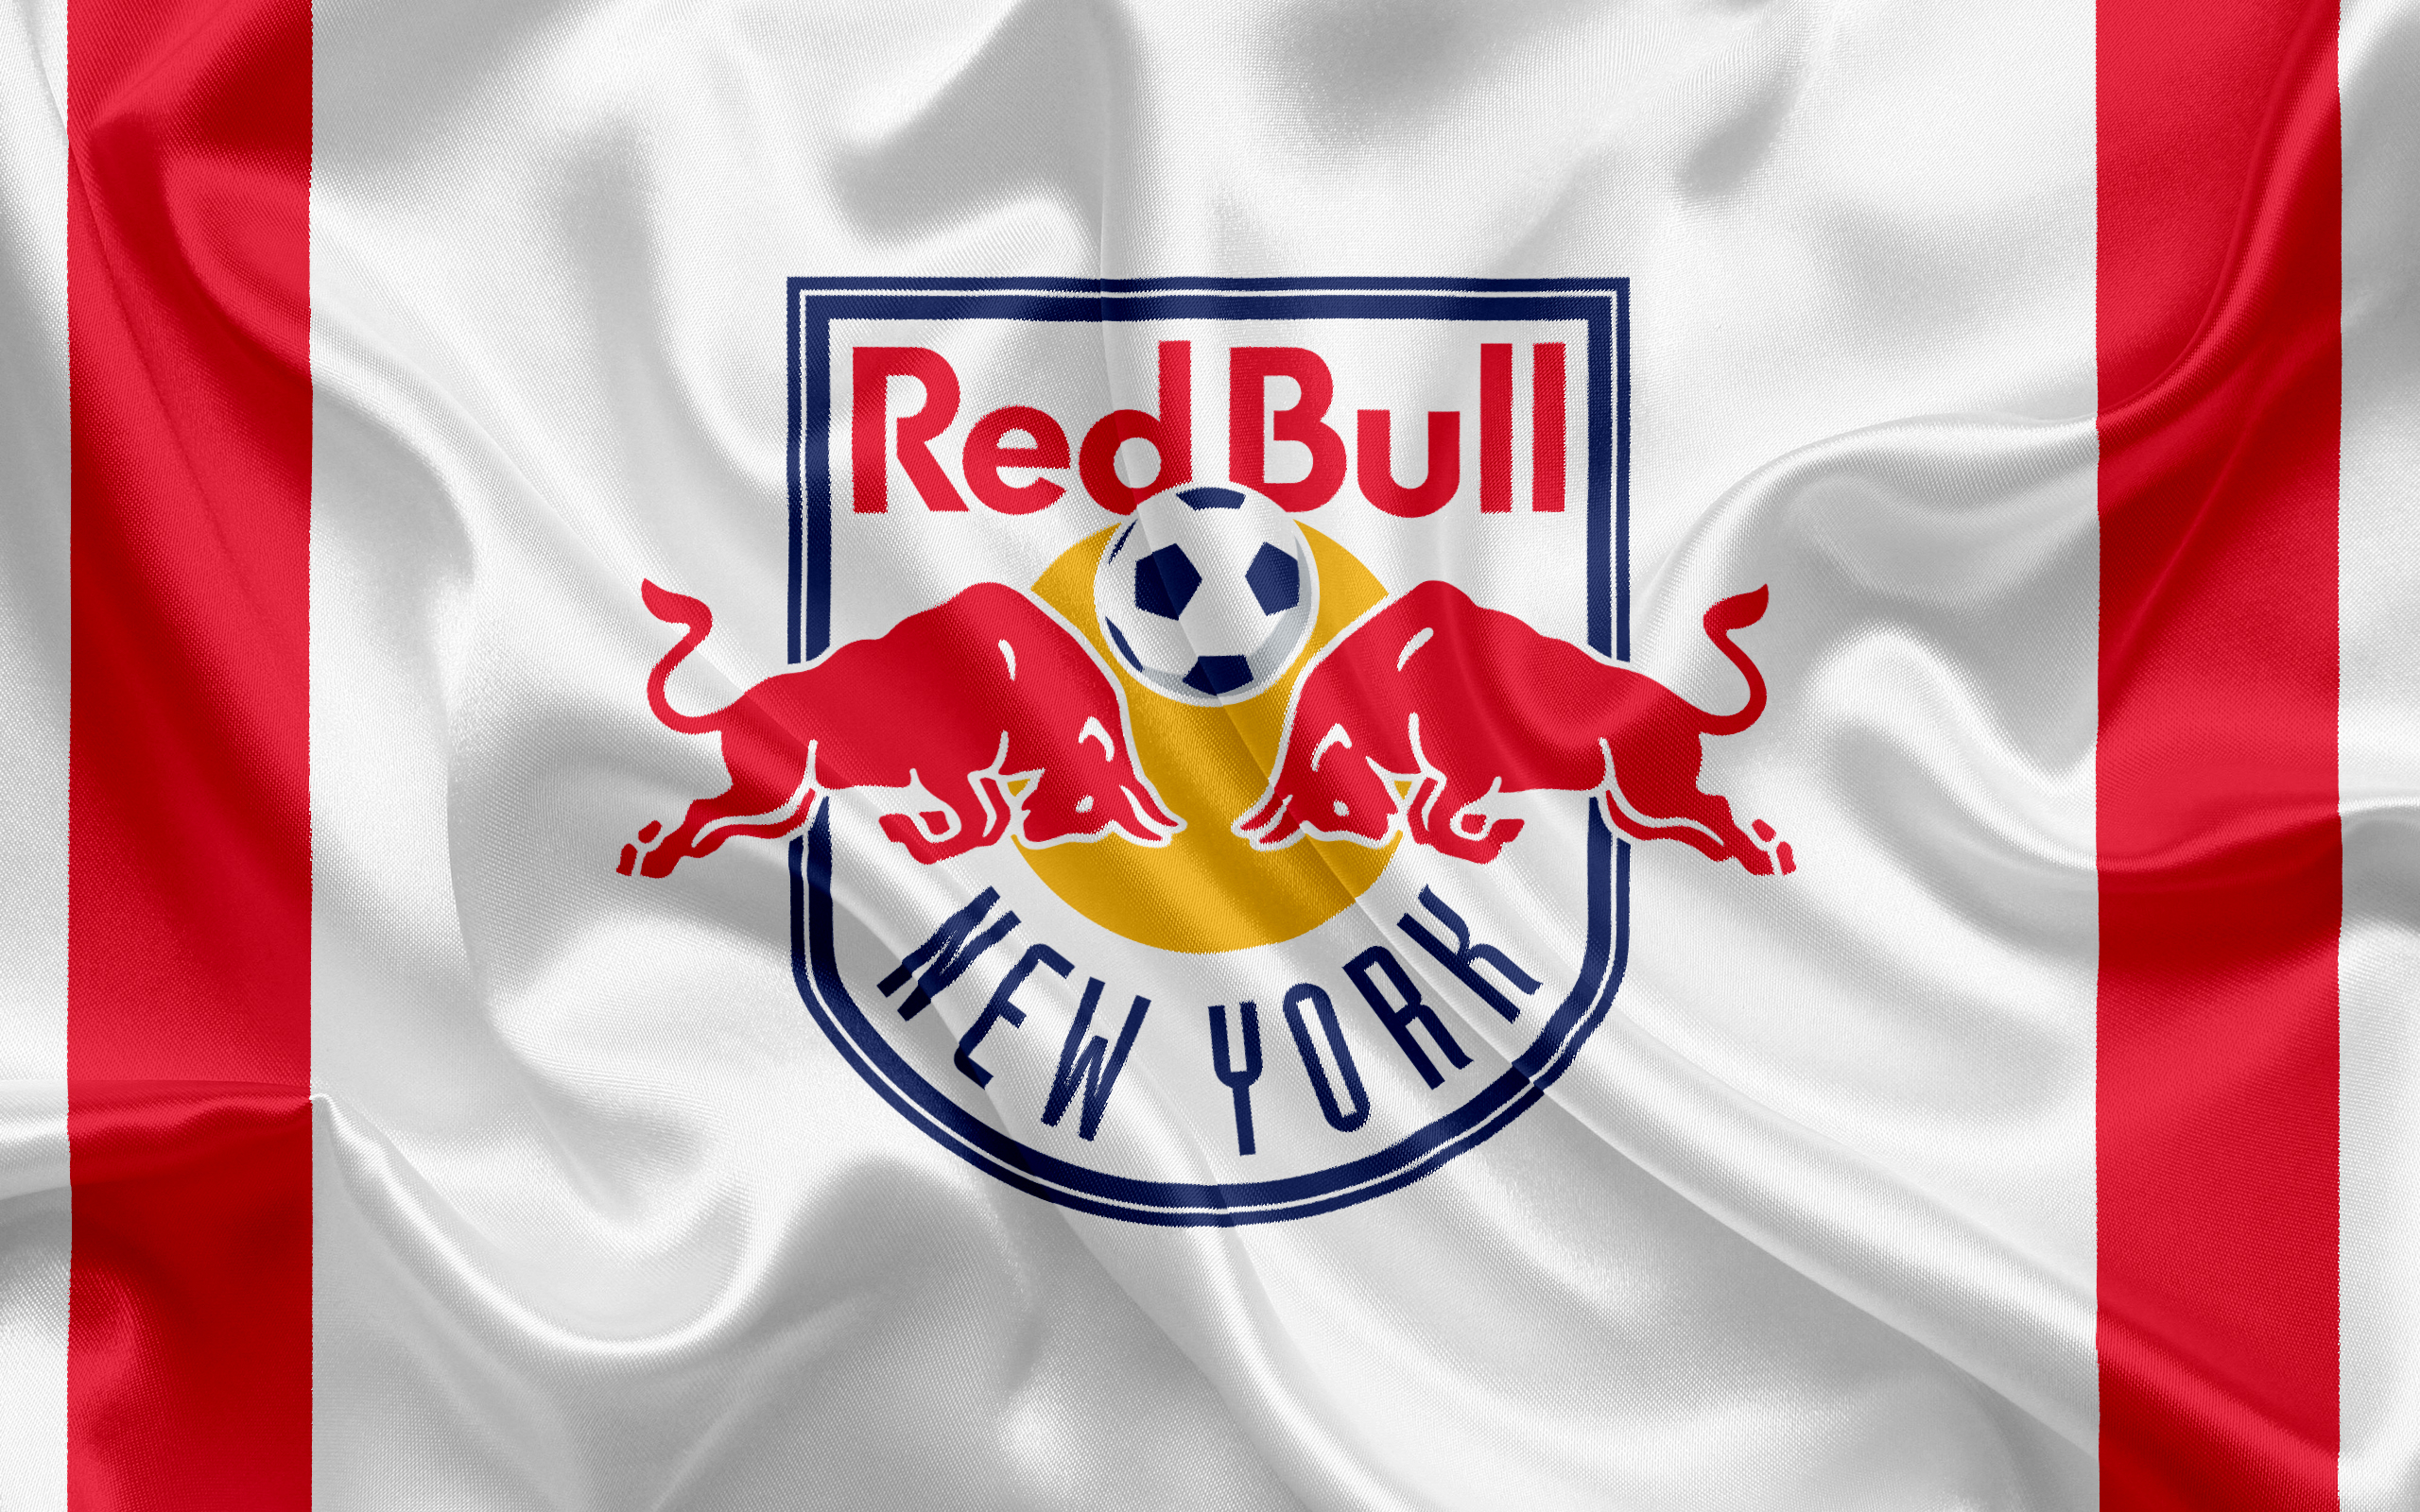 New York Red Bulls Hd Wallpaper Background Image 2560x1600